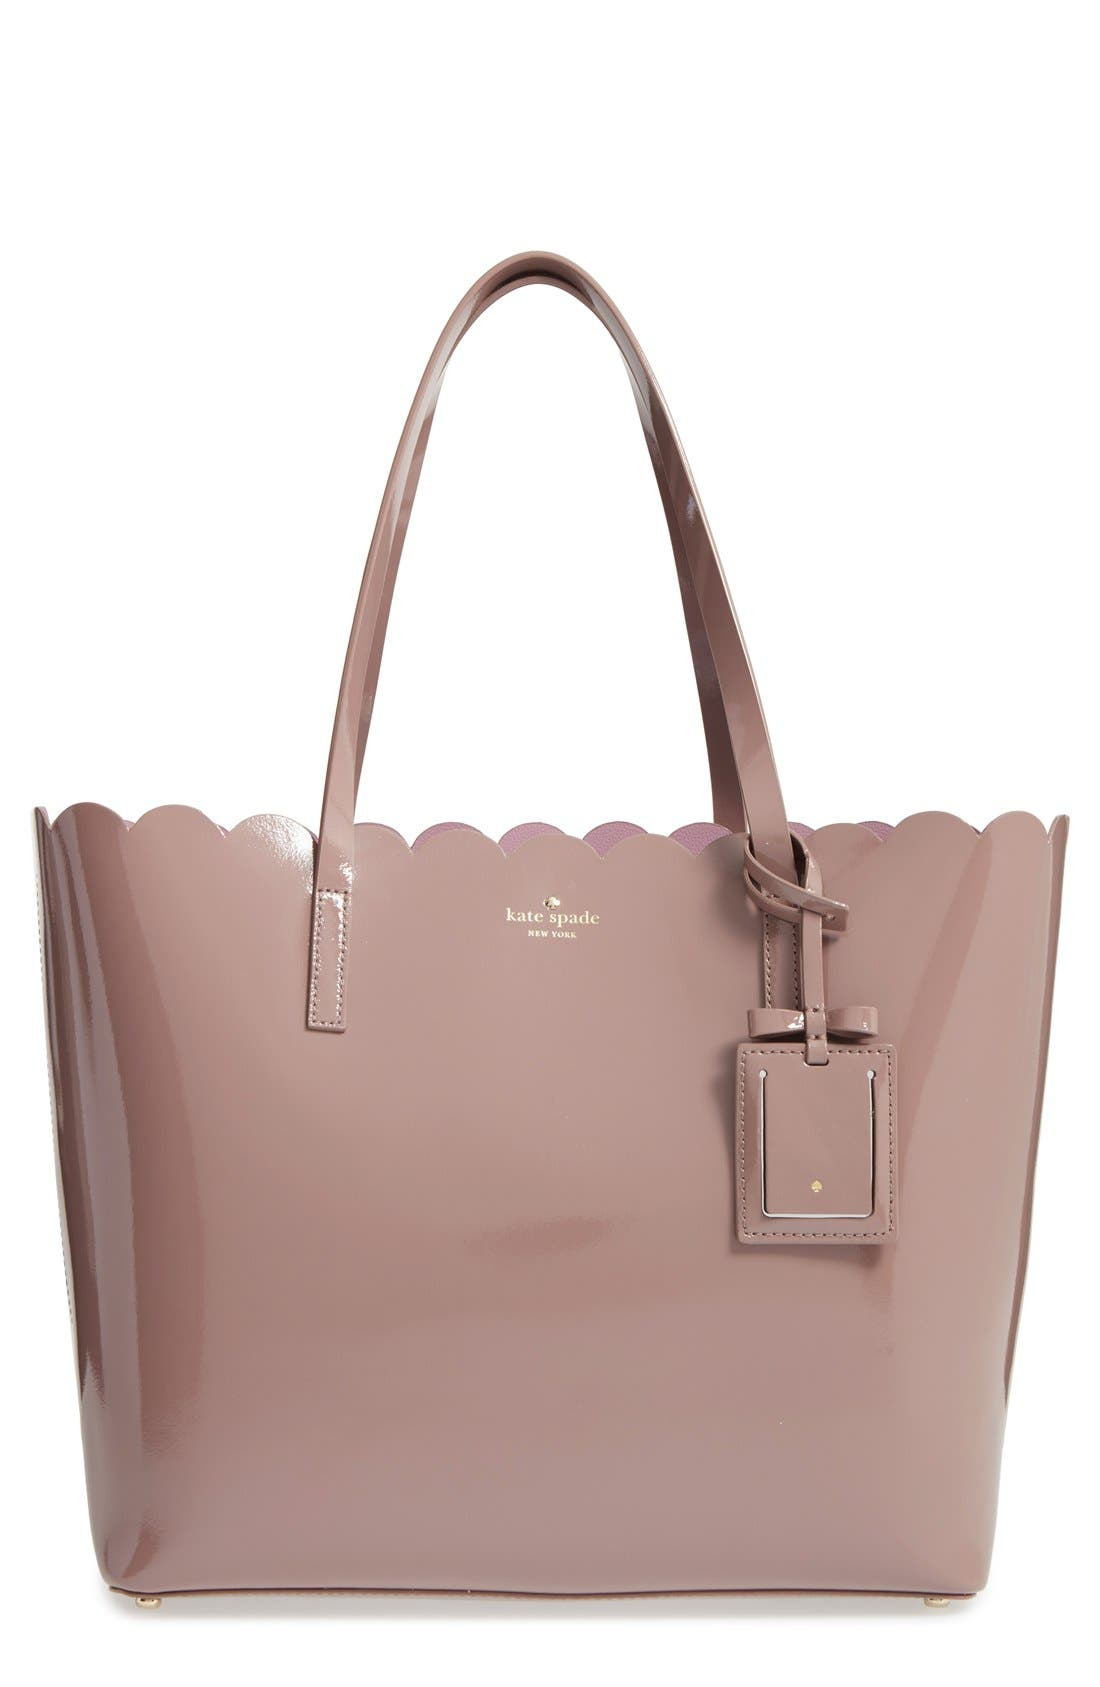 Main Image - kate spade new york 'lily avenue patent - carrigan' leather tote